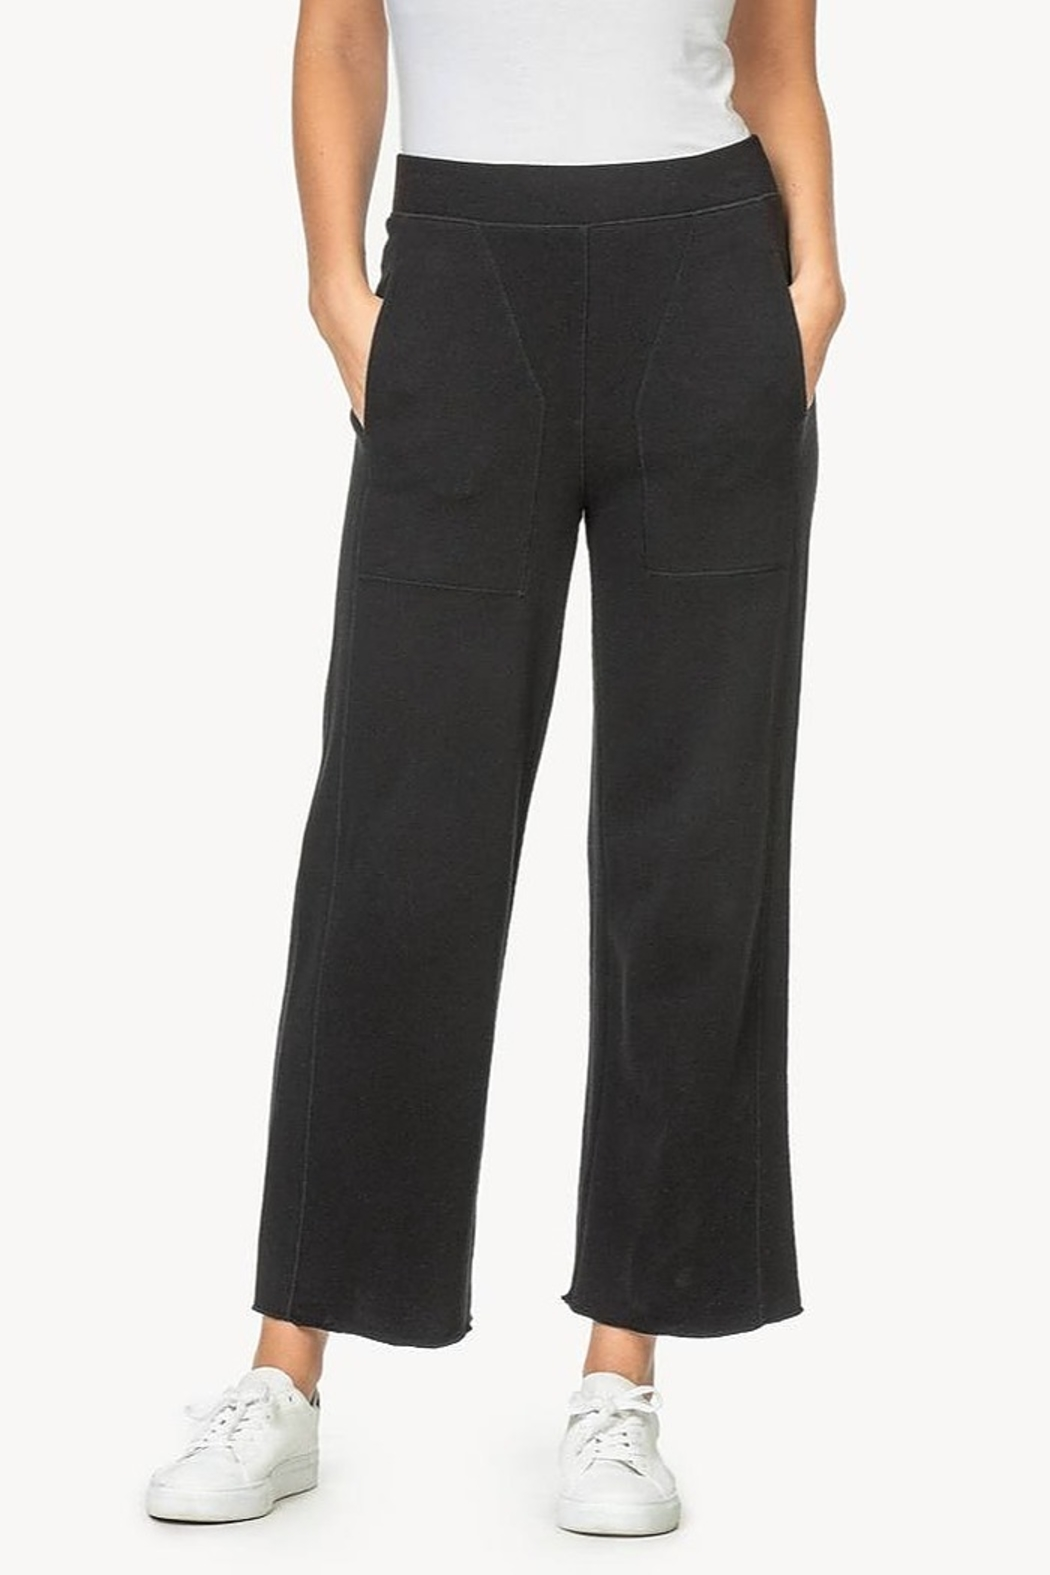 Lilla P Pull on French Terry Pants - Main Image